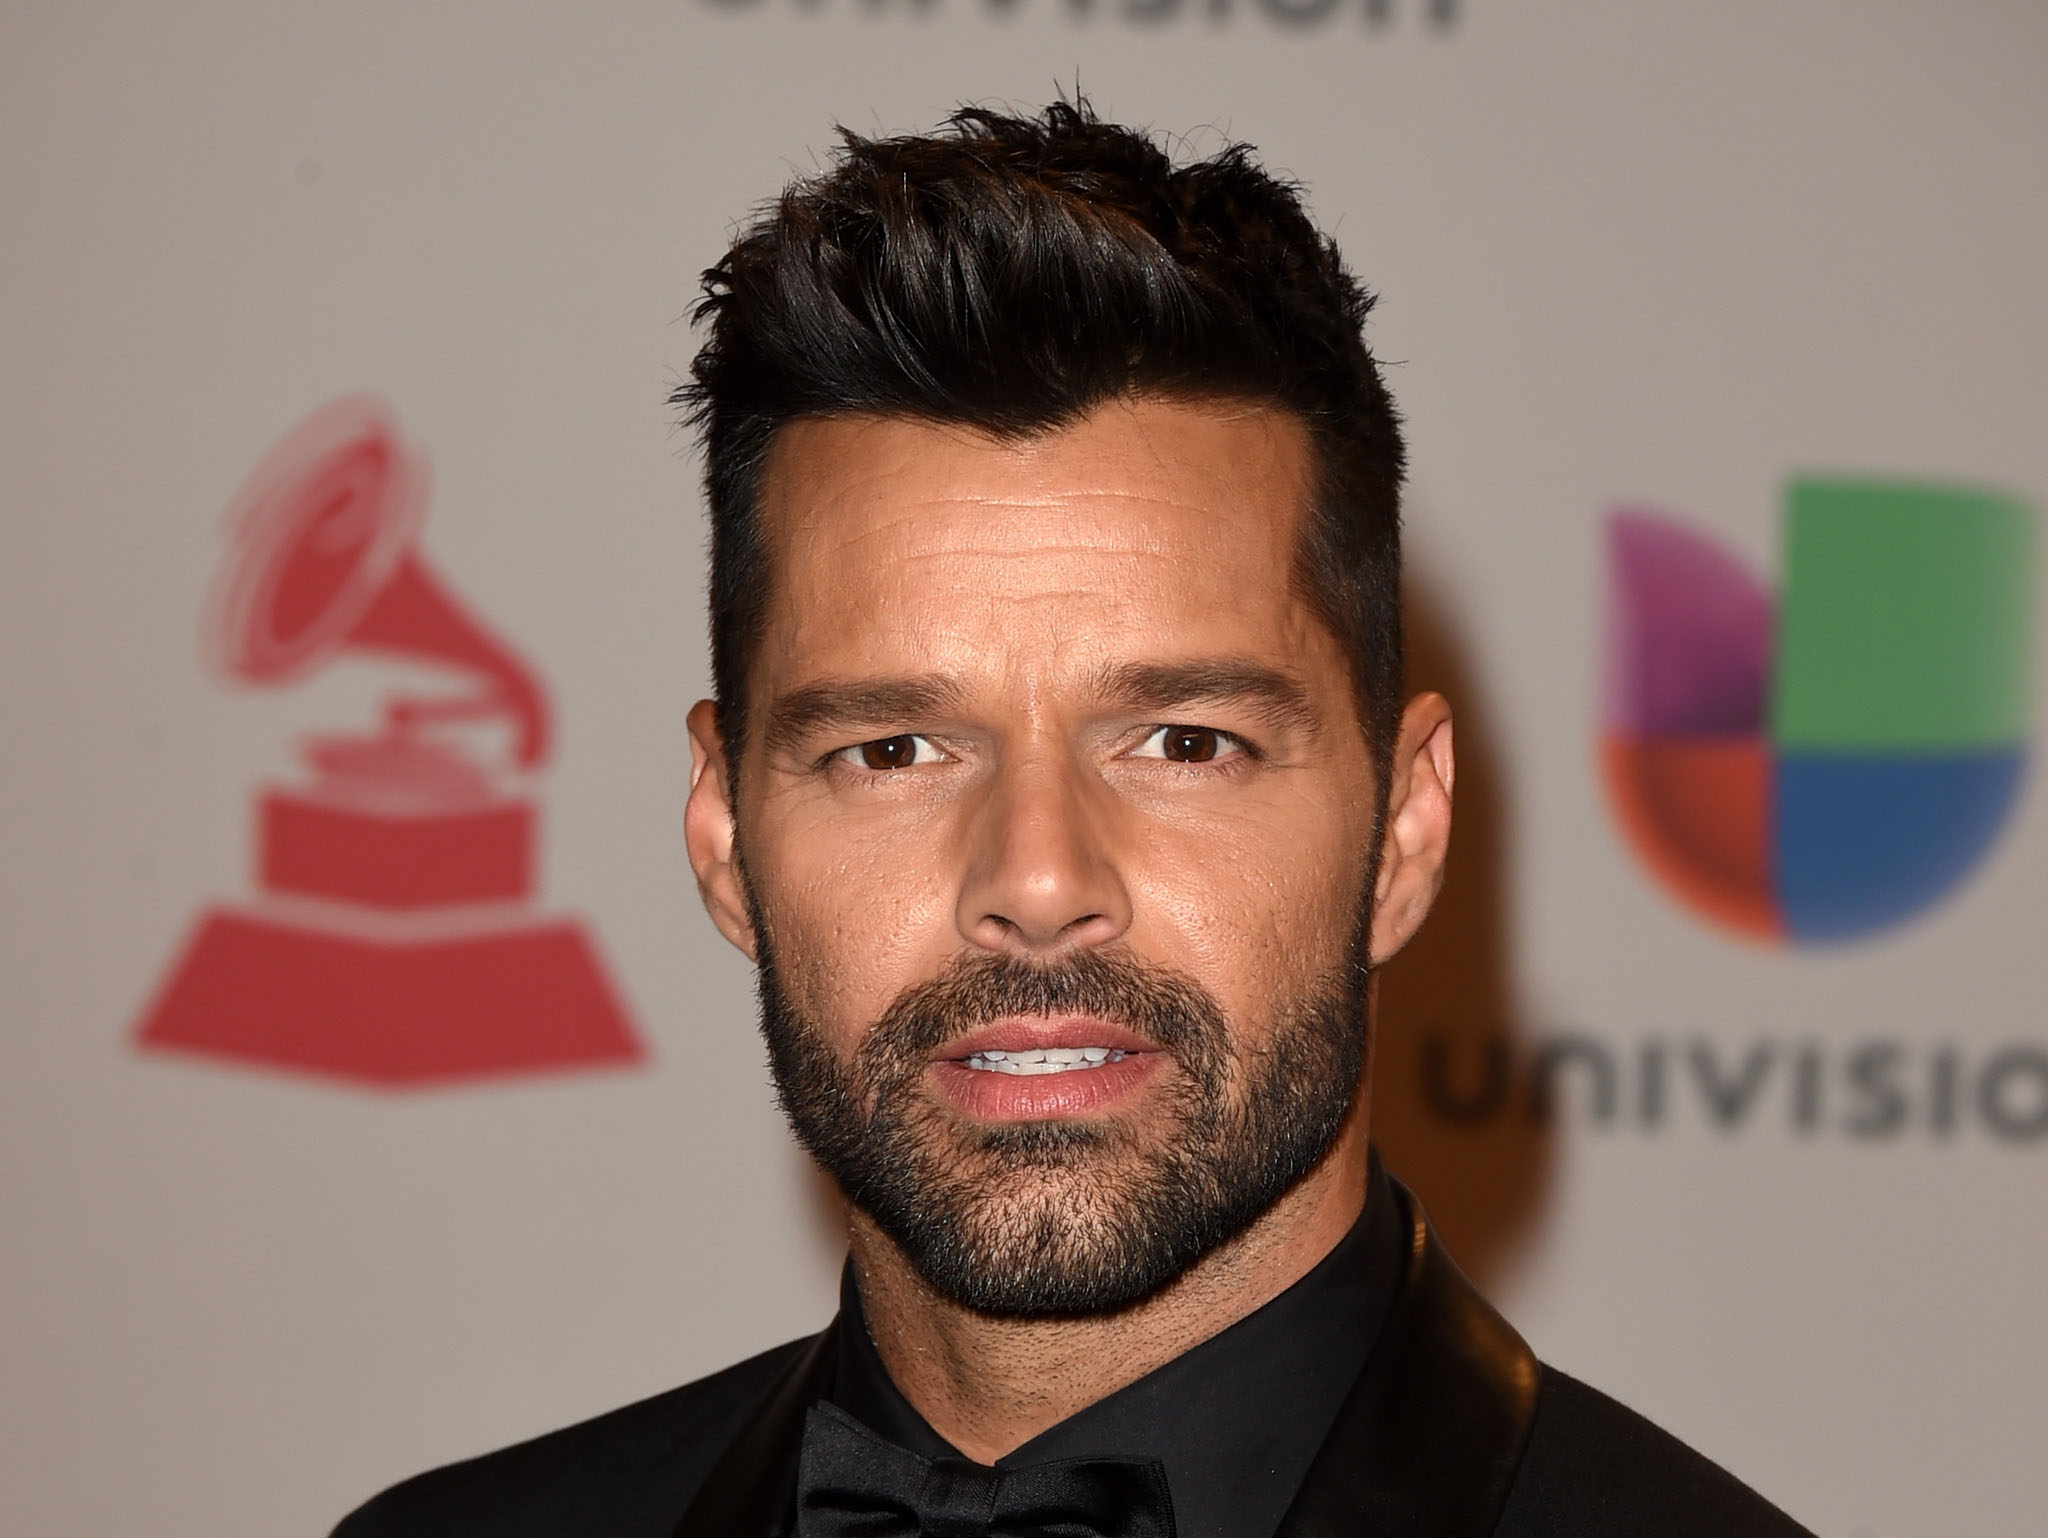 Ricky Martin's portray in American Crime Story was criticized by Antonio D'Amico. (Photo: Archive)